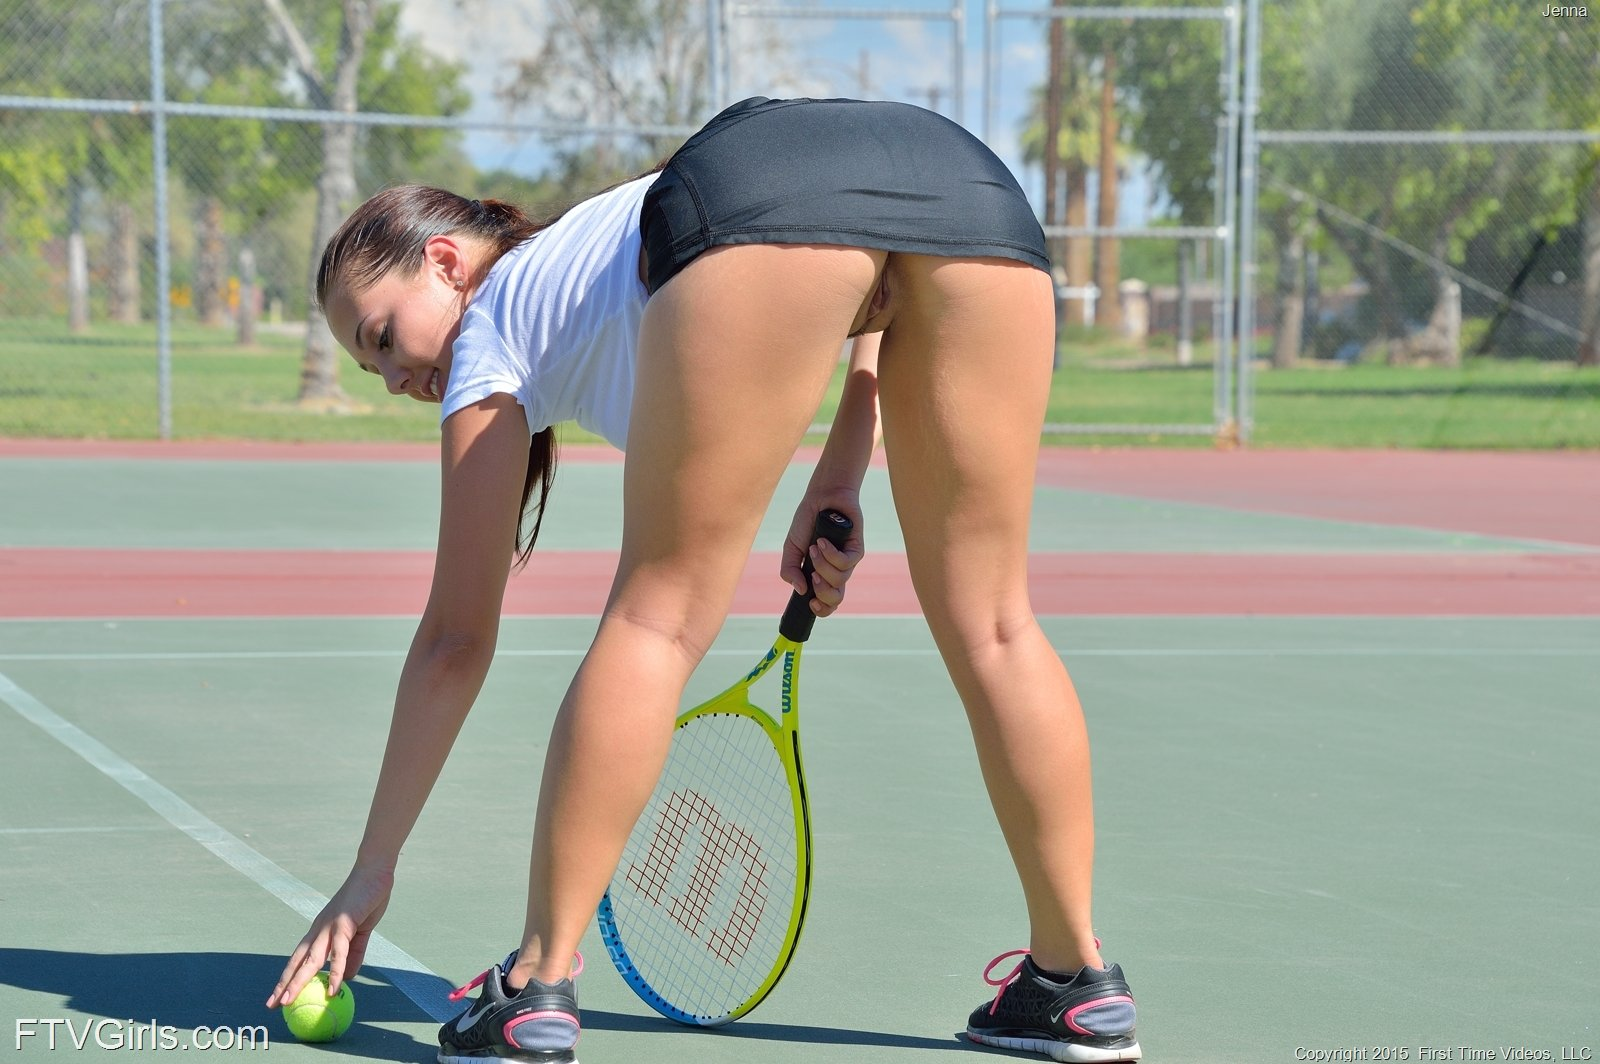 chubby-girls-professional-tennis-pussy-pics-ghetto